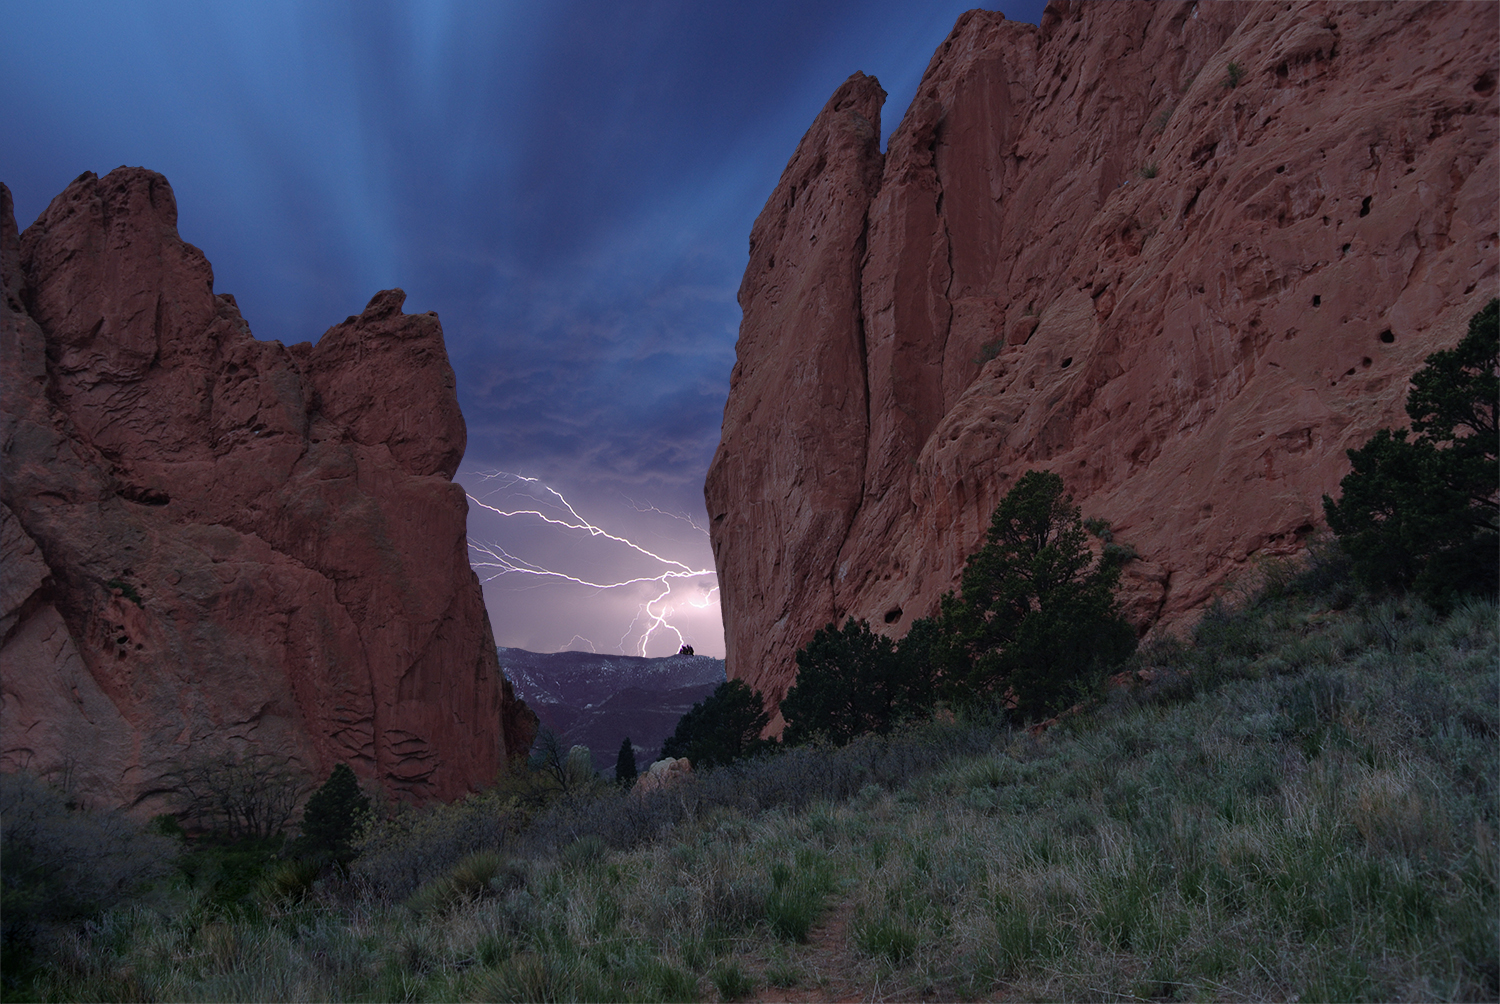 Garden of the Gods was ridiculously beautiful, do stop by if you happen to be in Colorado